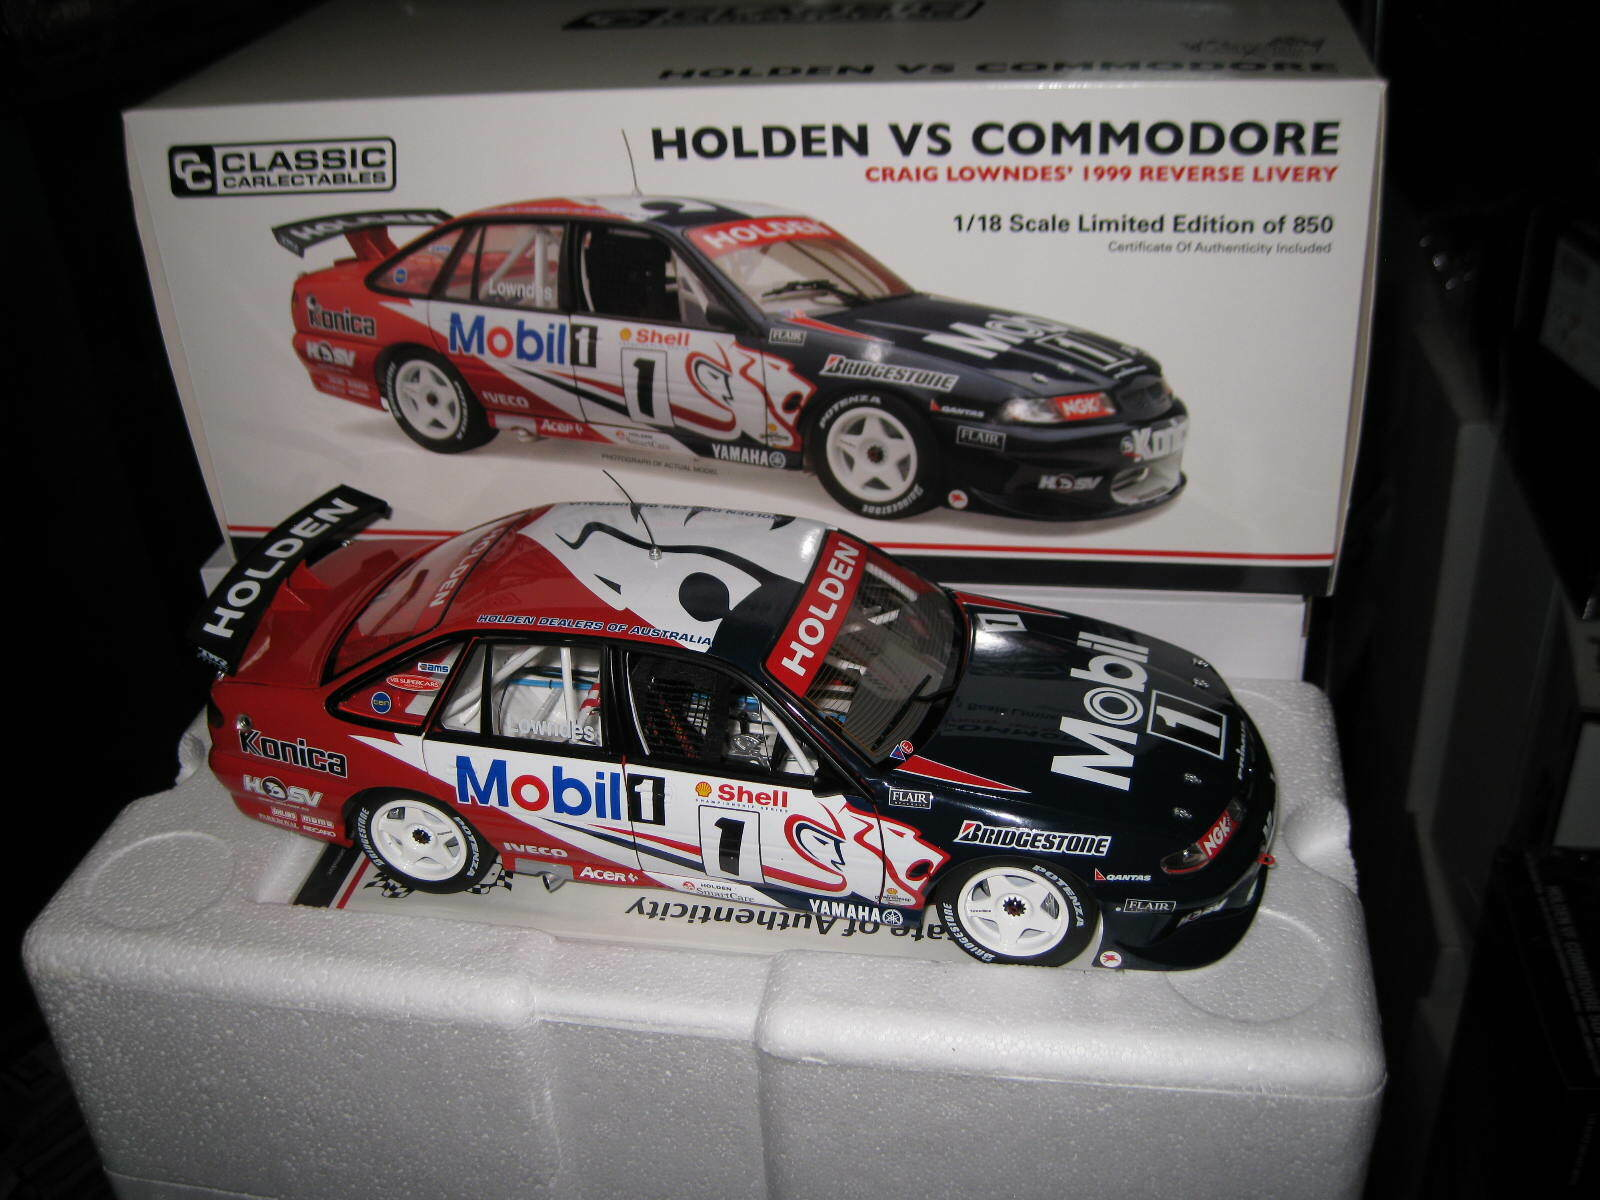 CLASSIC 1.18 HOLDEN VS COMMODORE HRT  1 1999 REVERSE LIVERY CRAIG LOWNDES  18670